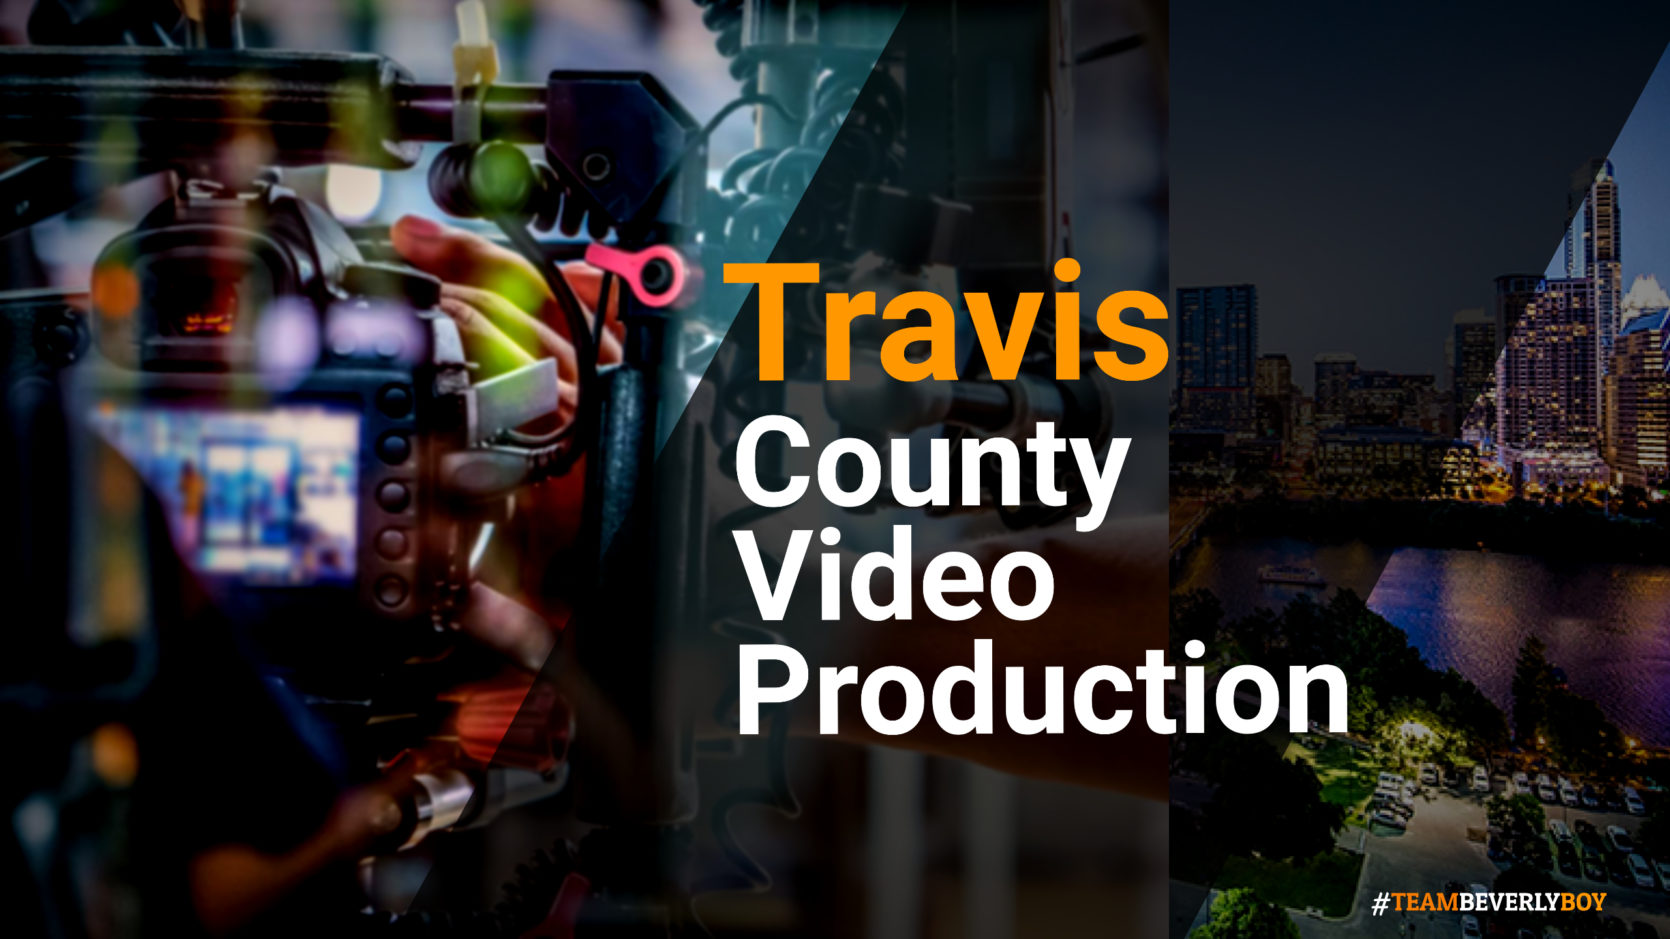 Travis county video production